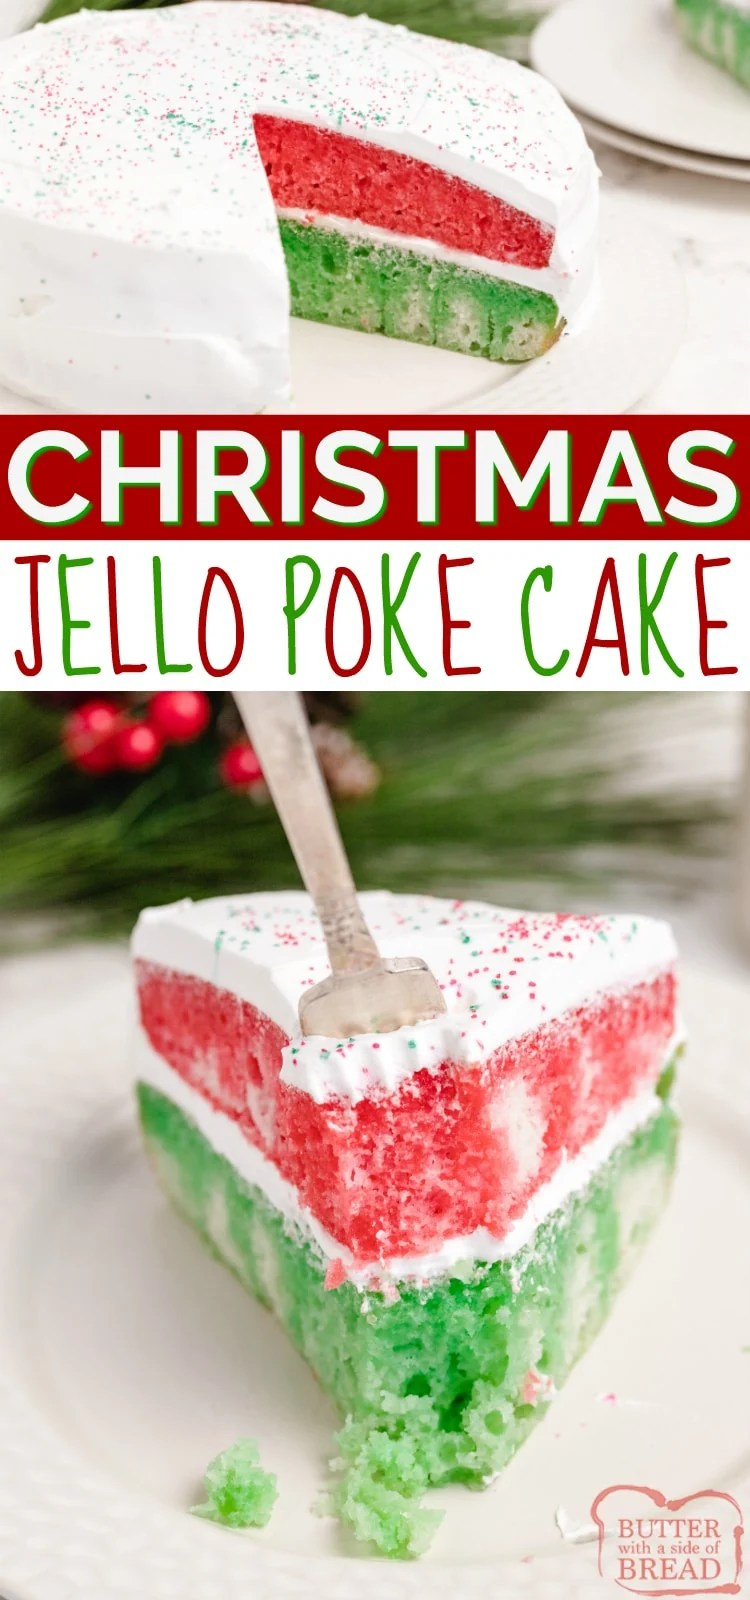 Christmas Jello Poke Cake uses a cake mix and red and green Jello to make a simple and delicious holiday dessert! This Christmas cake recipe is easy to make and absolutely beautiful to serve!